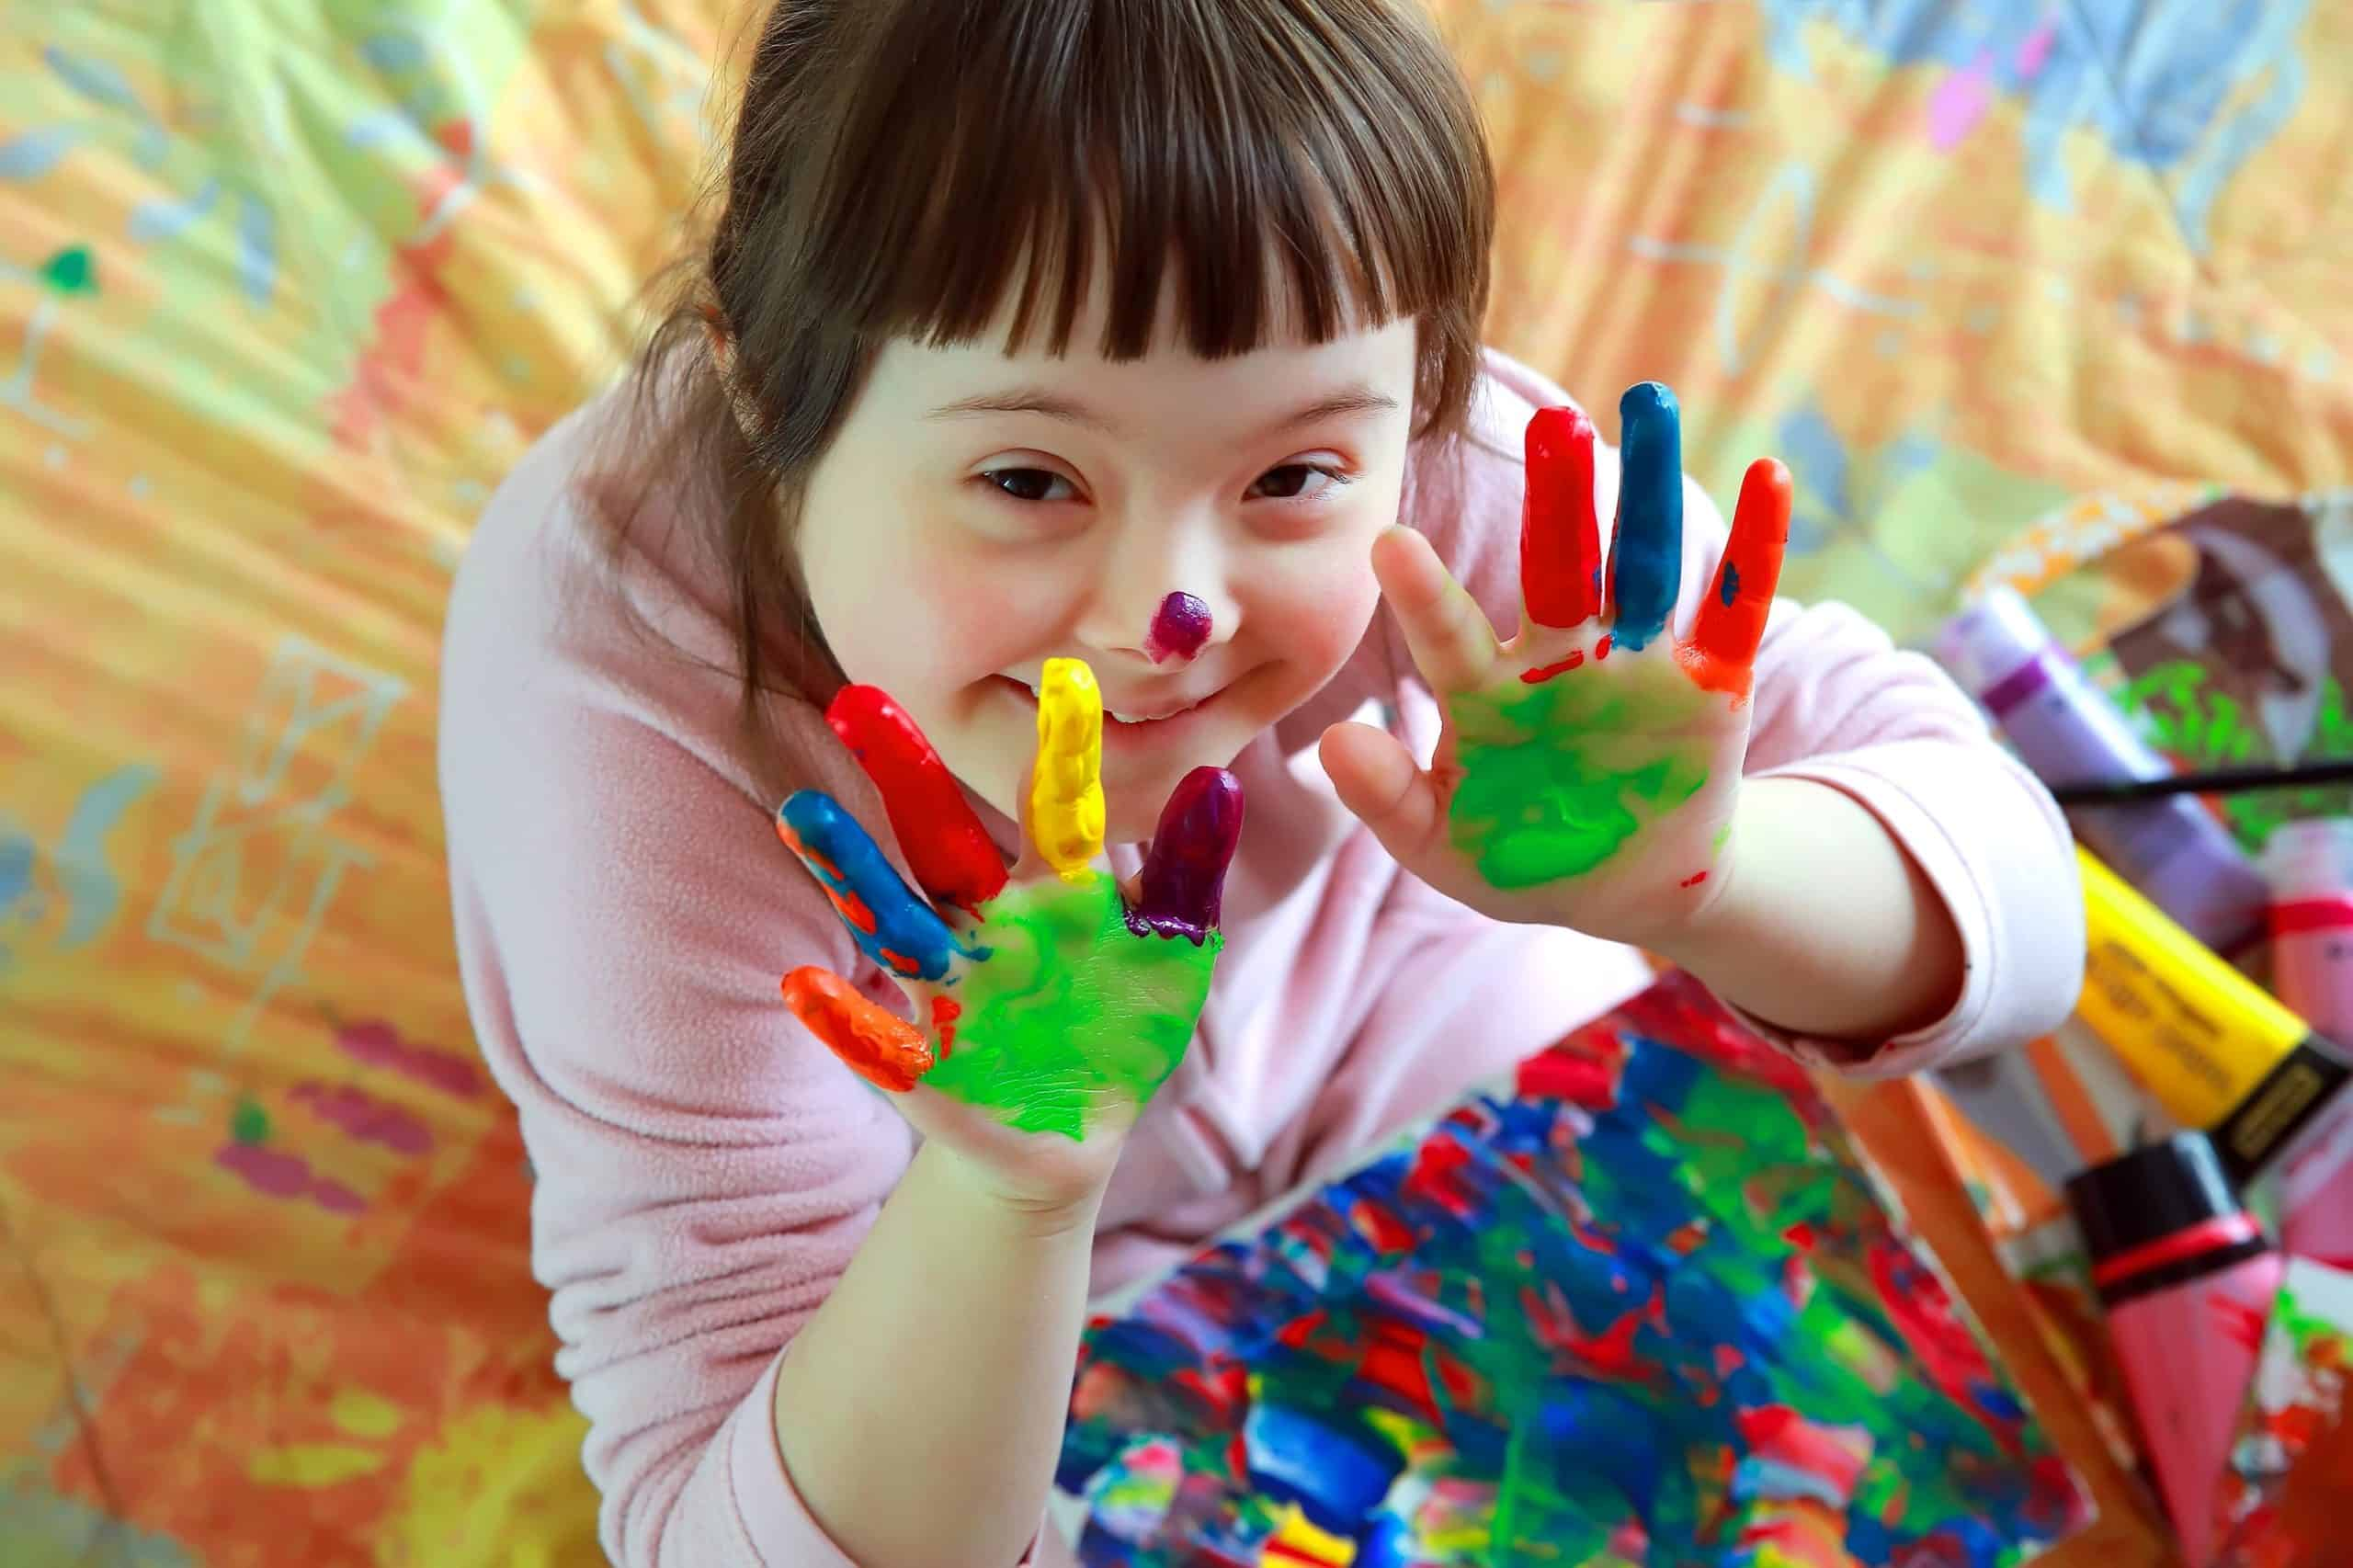 coloured-hands-girl-with-disability